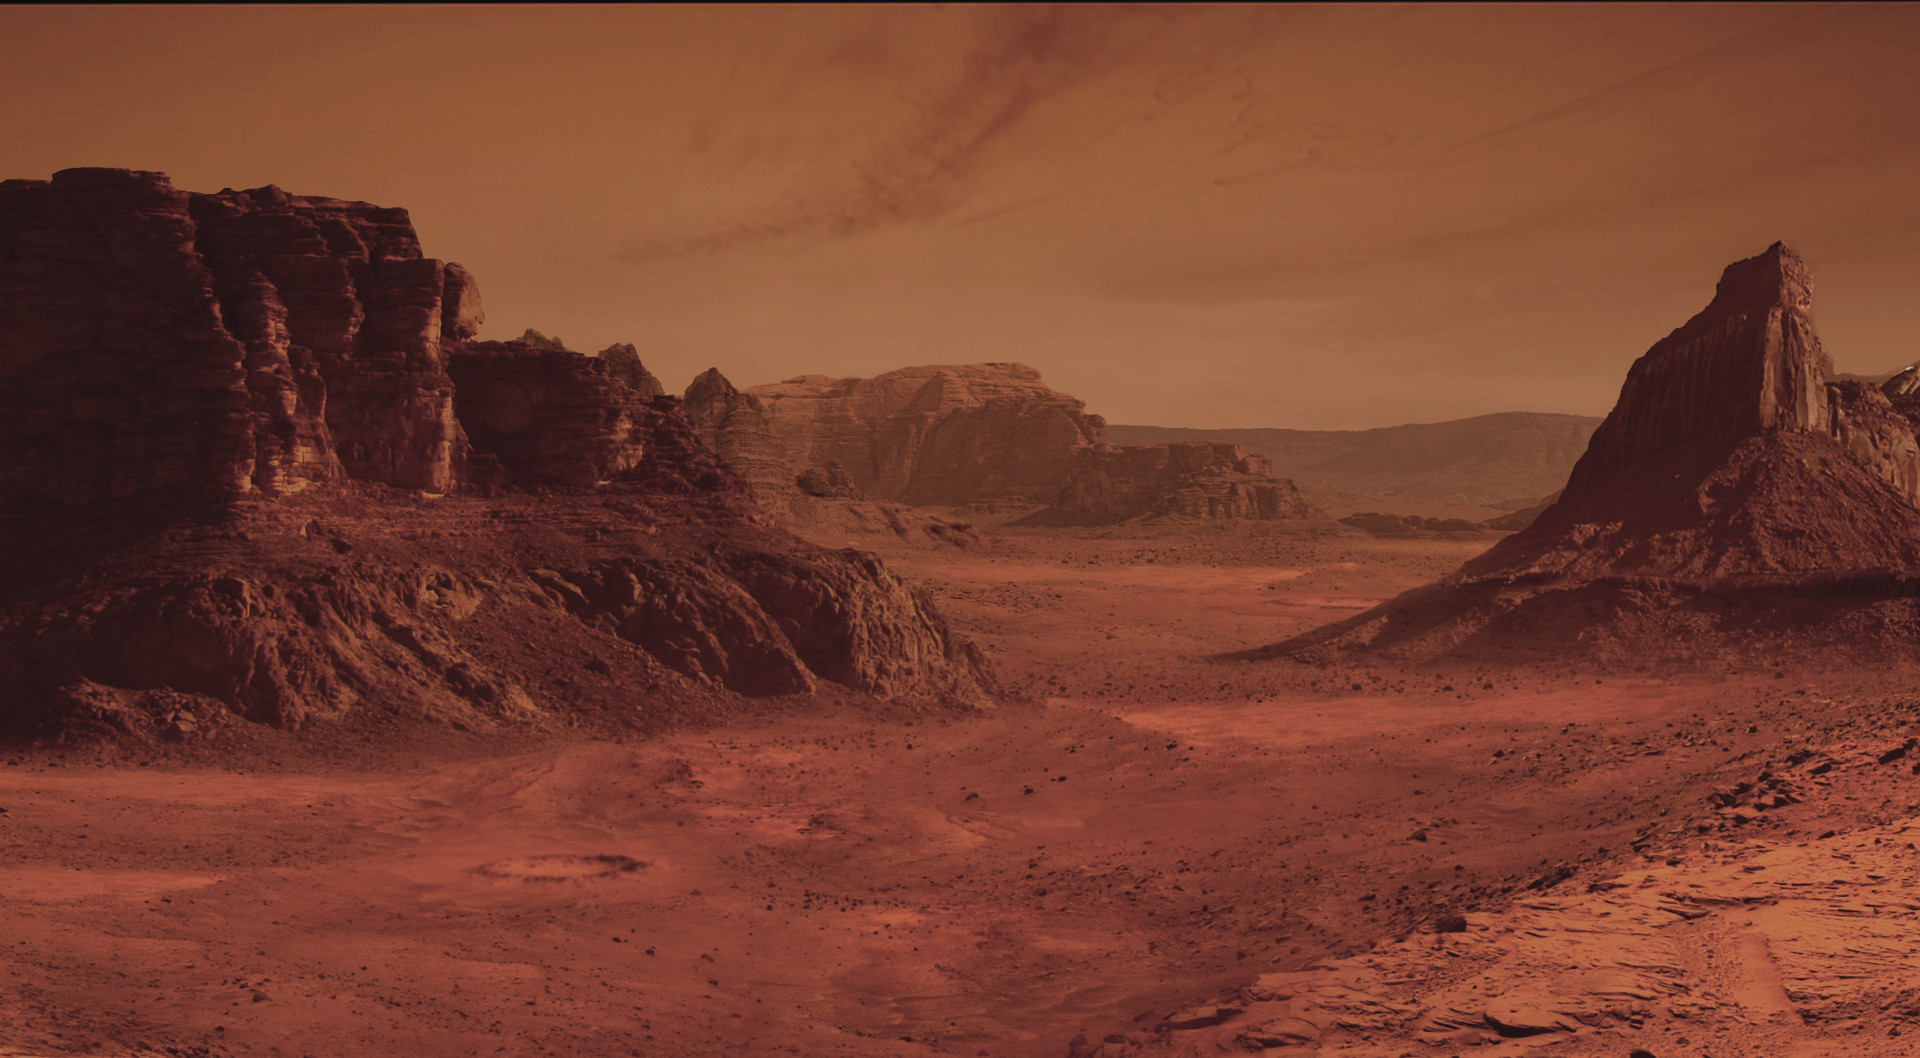 mars landscape background - HD 1920×1058